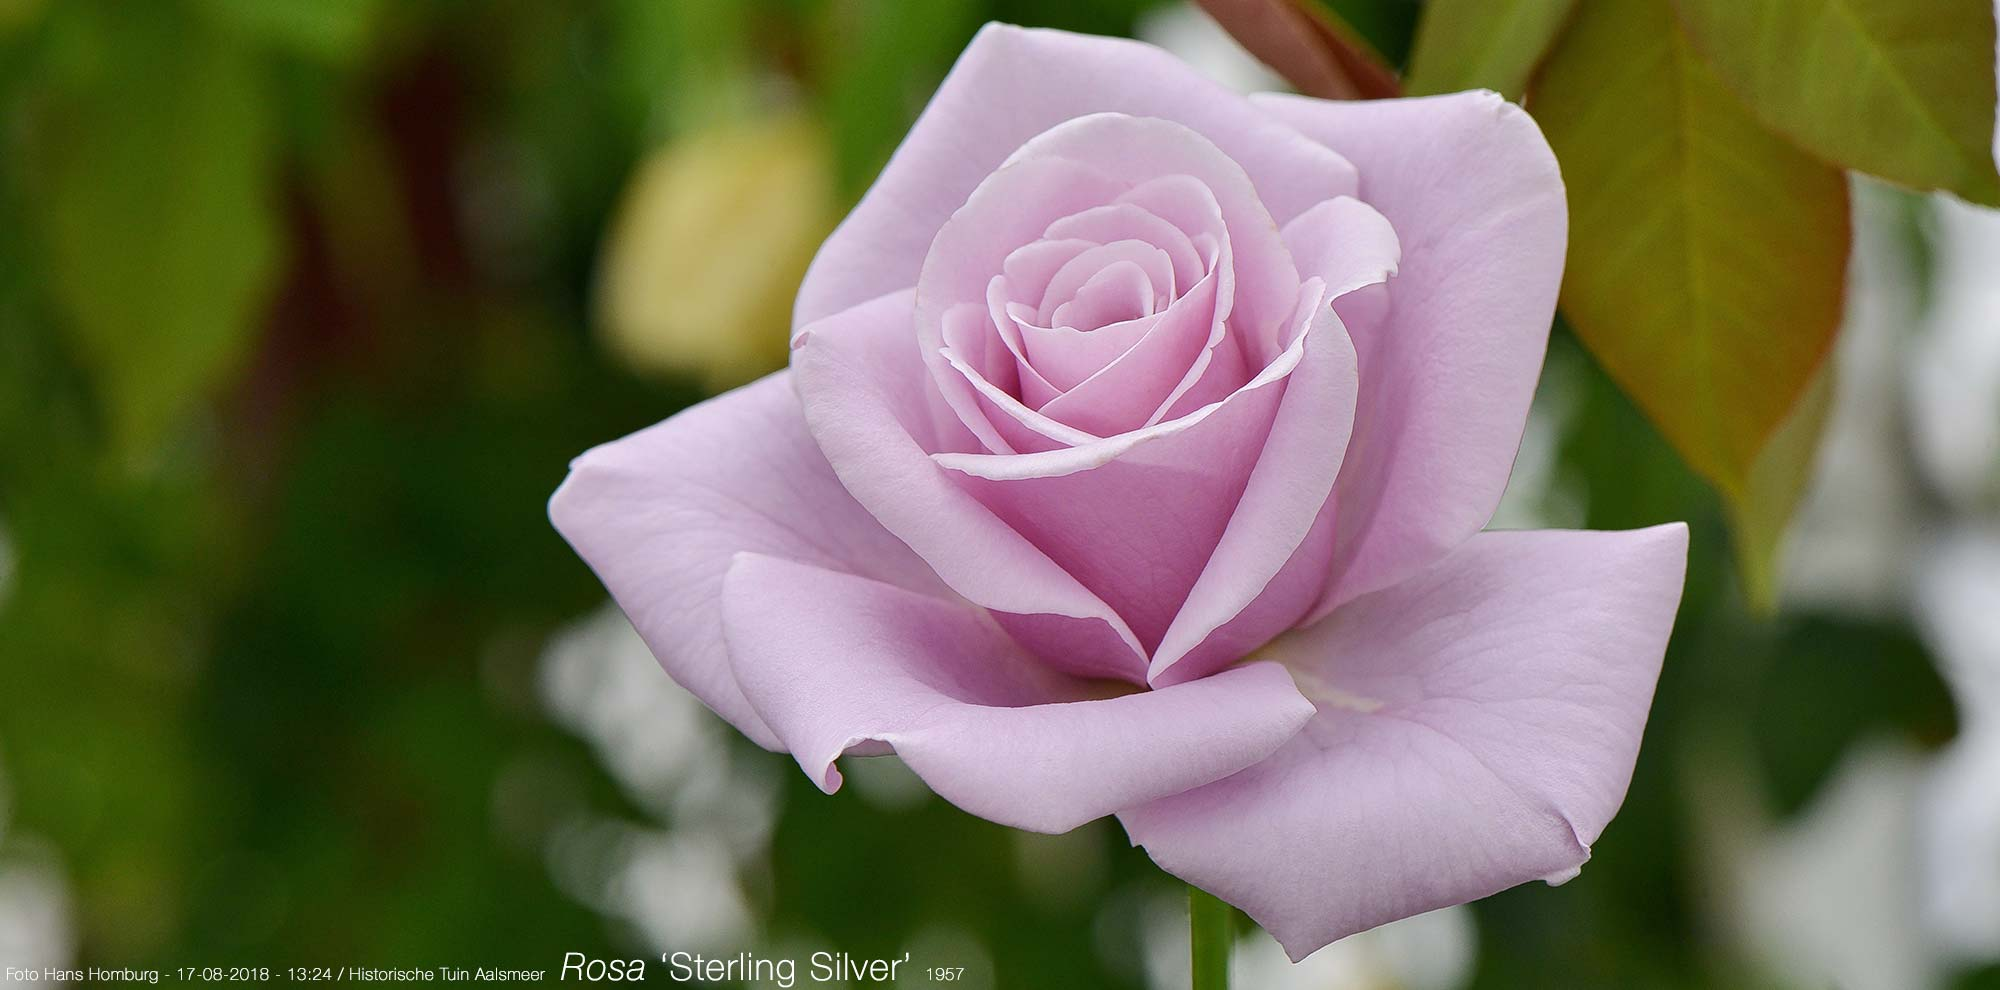 Rosa 'Stirling Silver' 1897